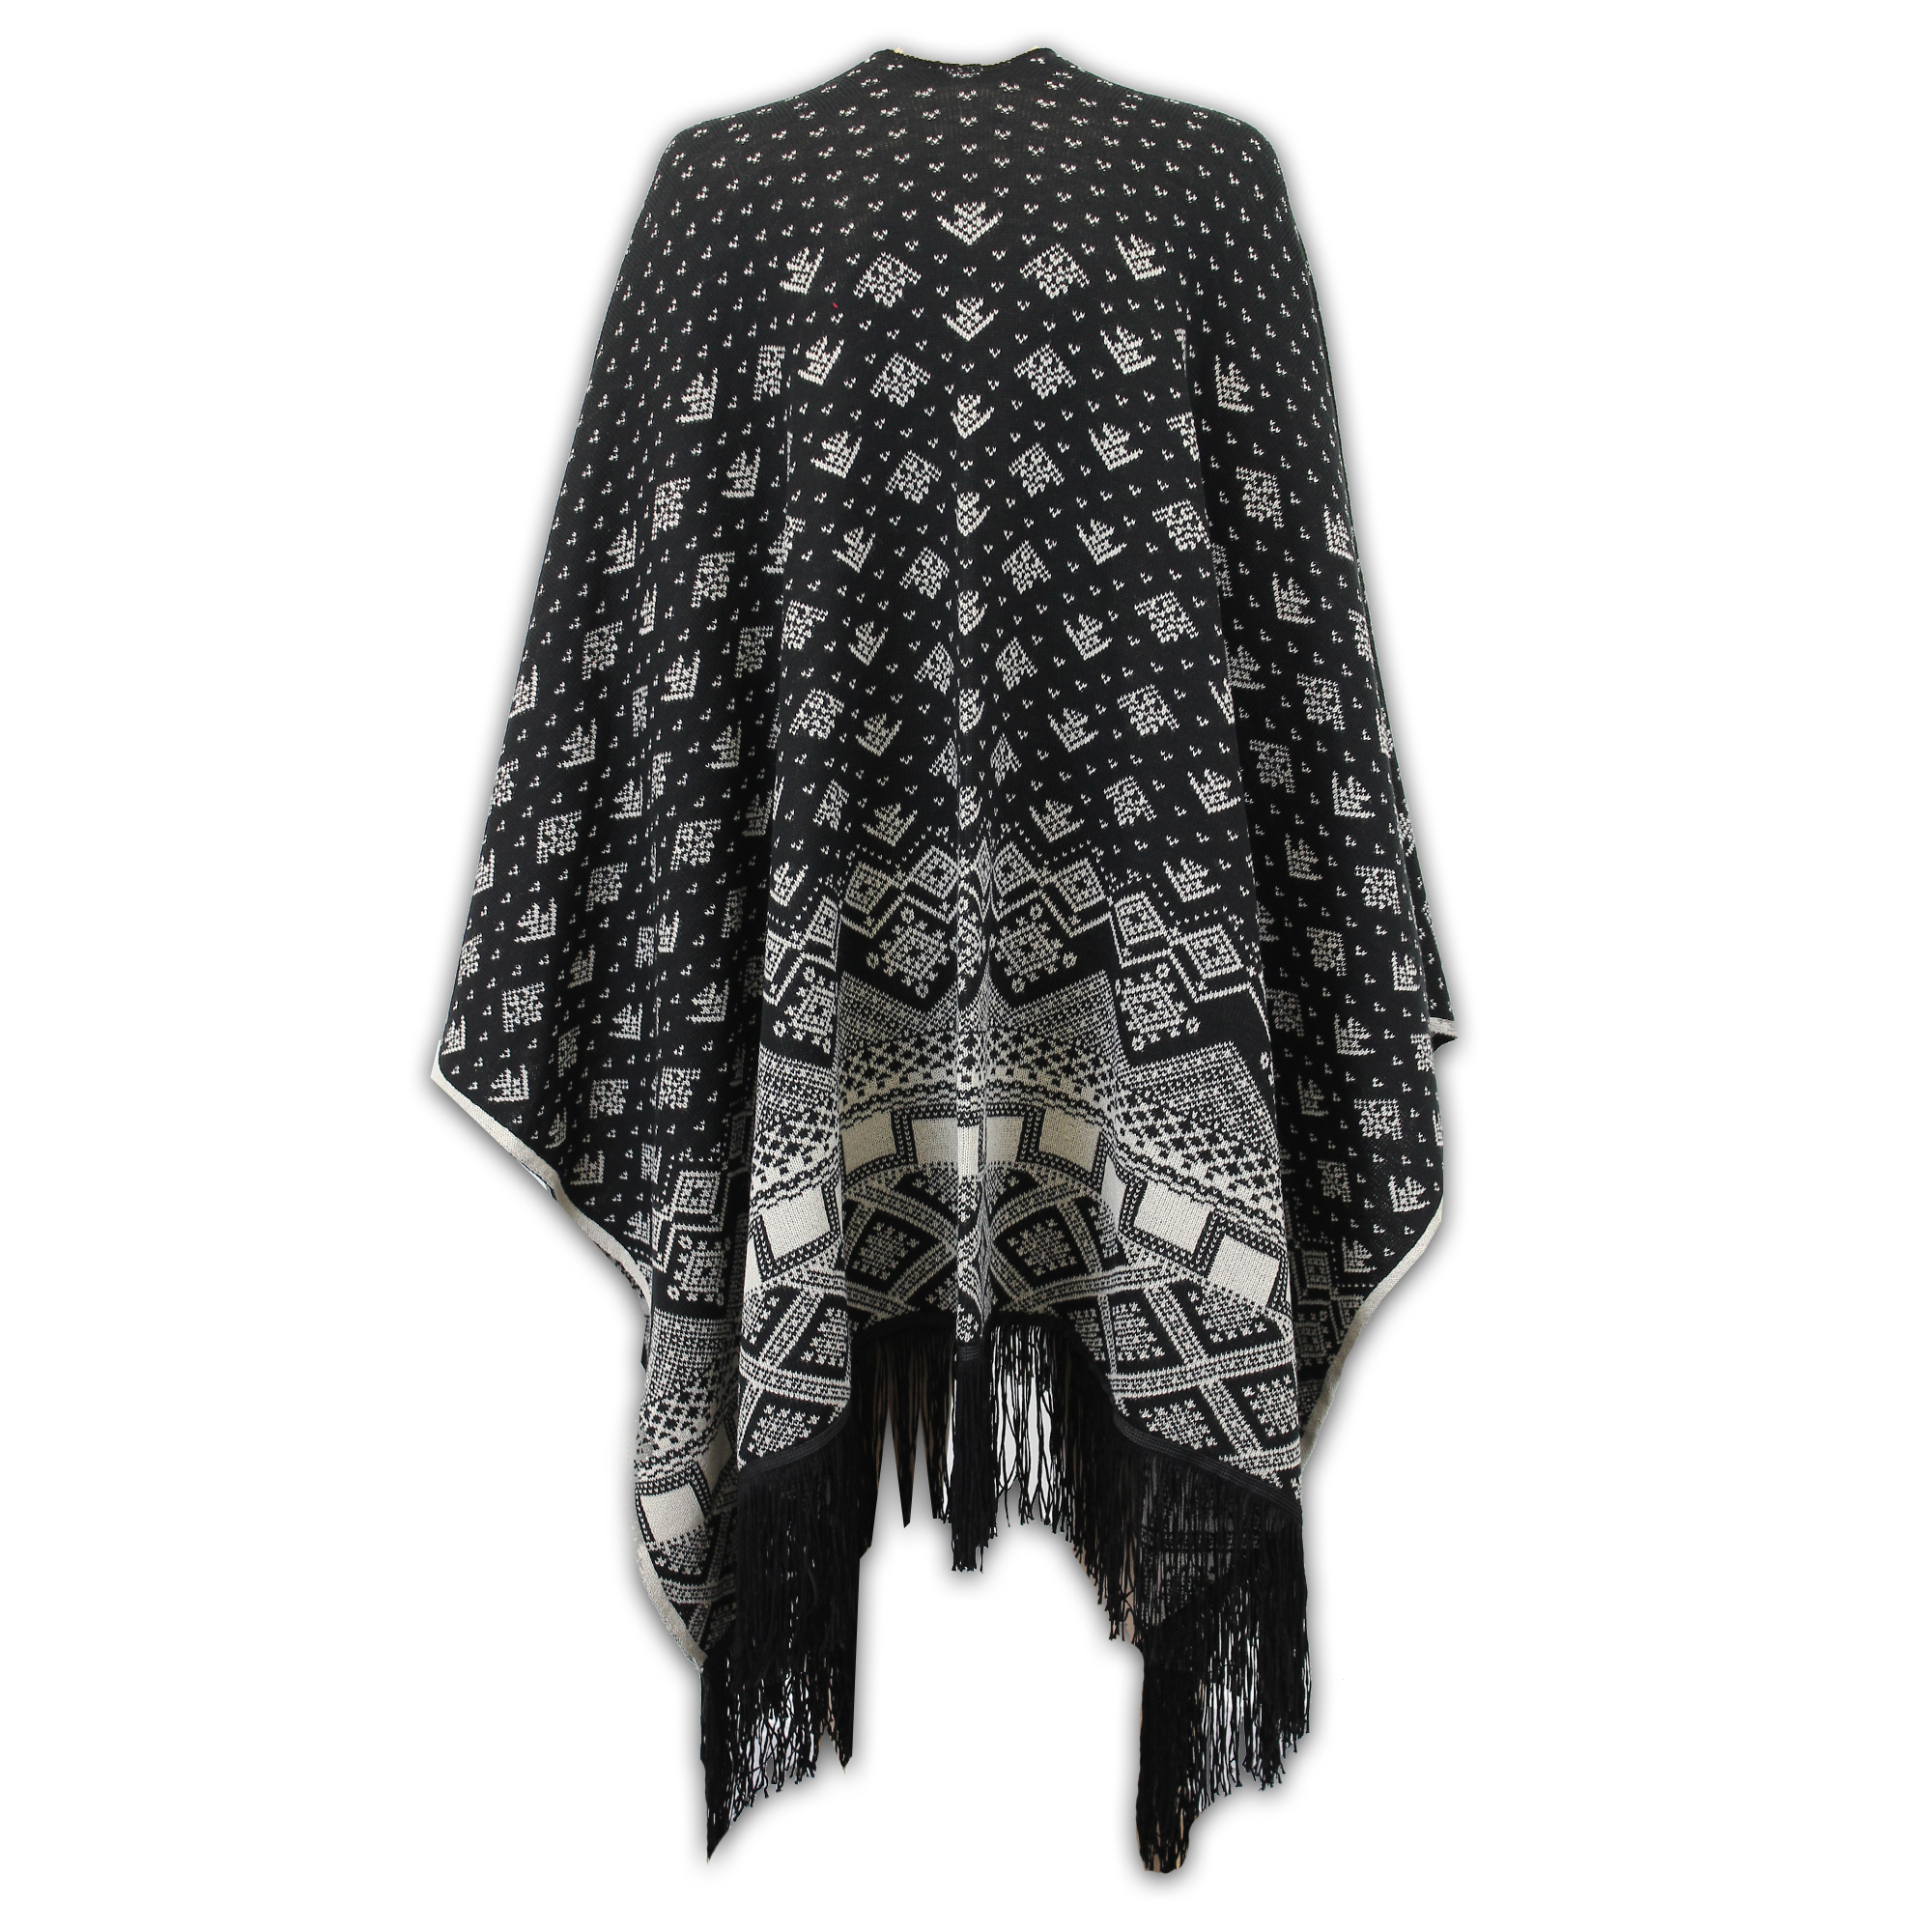 Ladies-Shawl-Womens-Knitted-Poncho-Cardigan-Reversible-Aztec-Cape-Oversized-New thumbnail 6